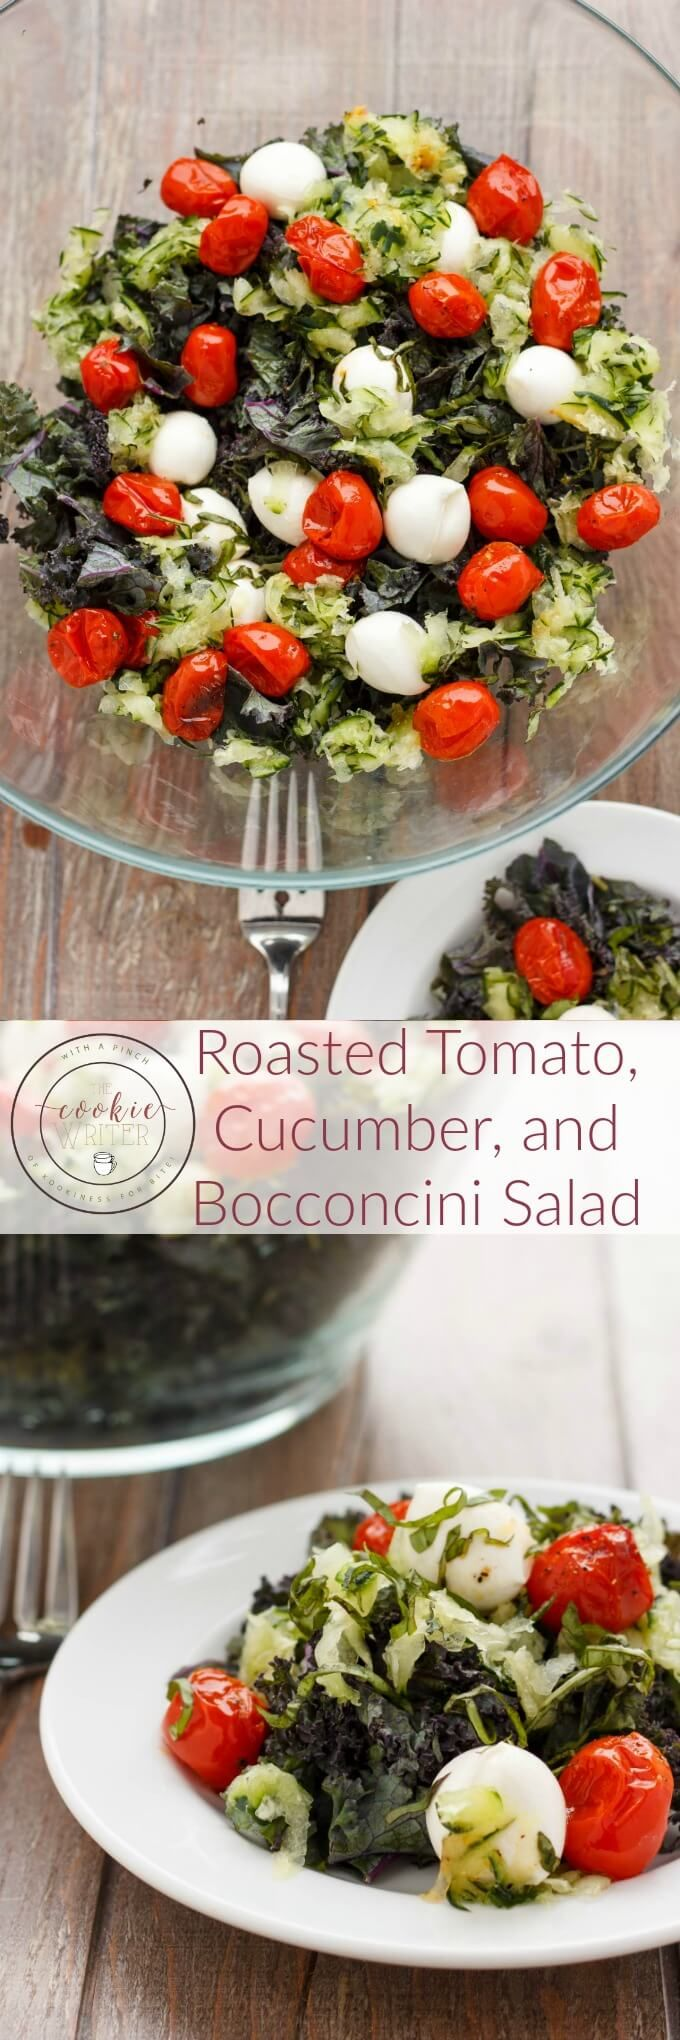 Roasted Tomato, Cucumber, and Bocconcini Salad | http://thecookiewriter,com | @thecookiewriter | #salad | This healthy salad is perfect during the summer, but also a great office lunch during back to school!